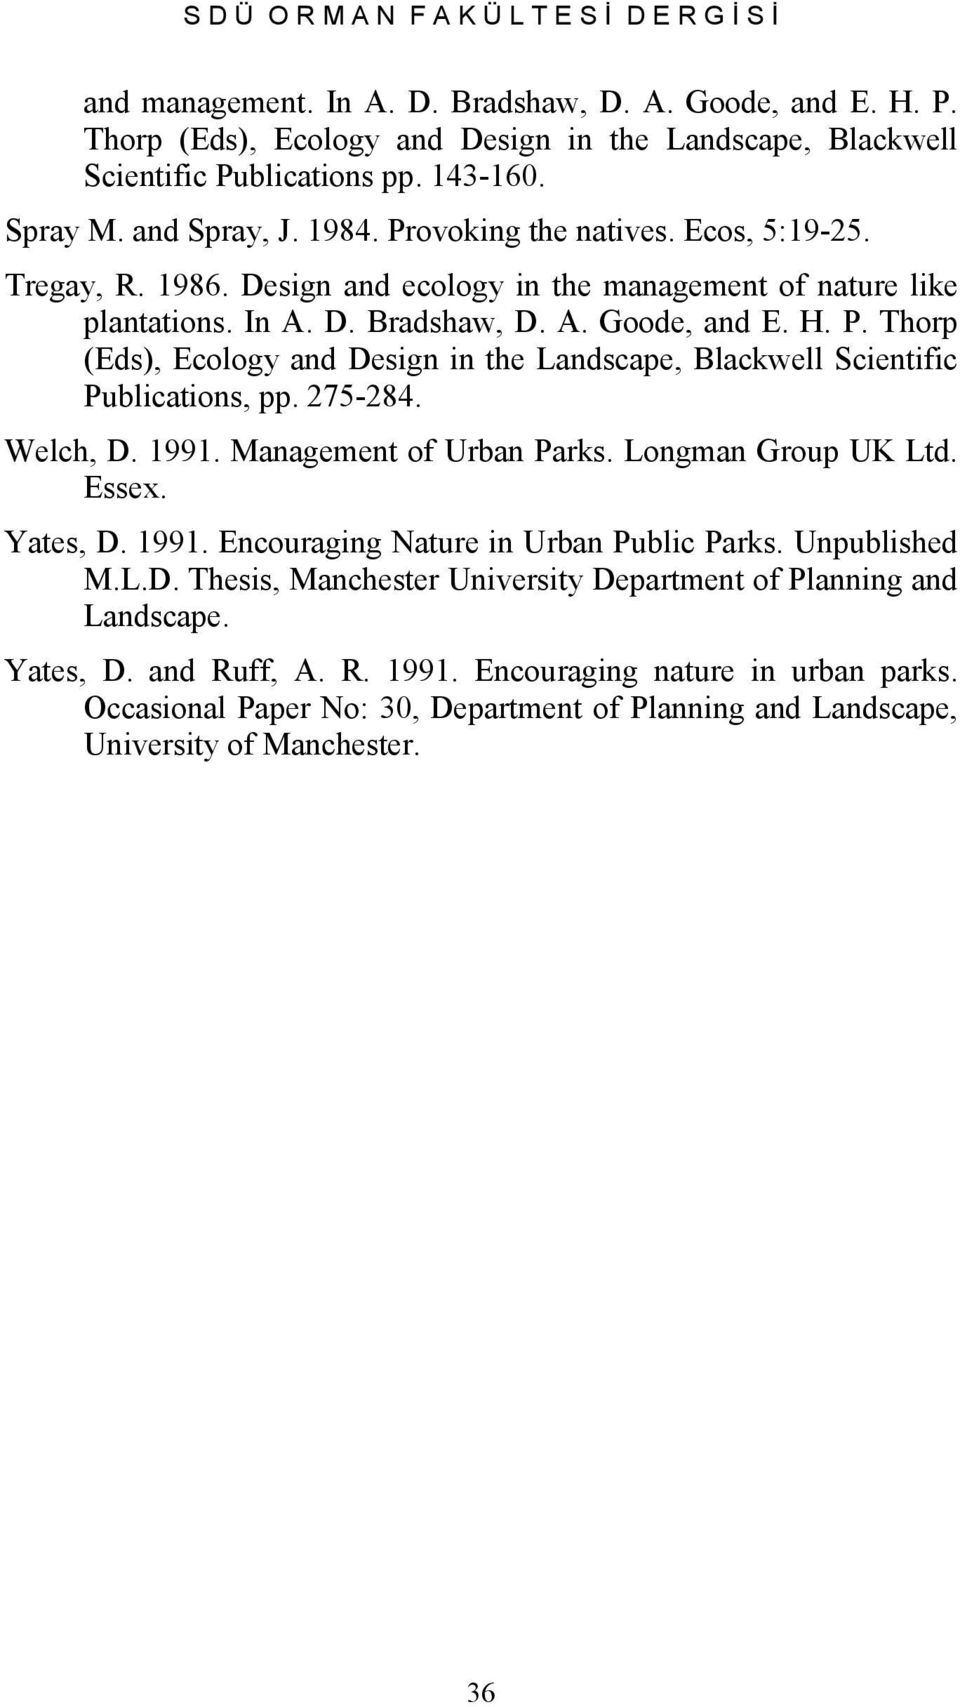 P. Thorp (Eds), Ecology and Design in the Landscape, Blackwell Scientific Publications, pp. 275-284. Welch, D. 1991. Management of Urban Parks. Longman Group UK Ltd. Essex. Yates, D. 1991. Encouraging Nature in Urban Public Parks.